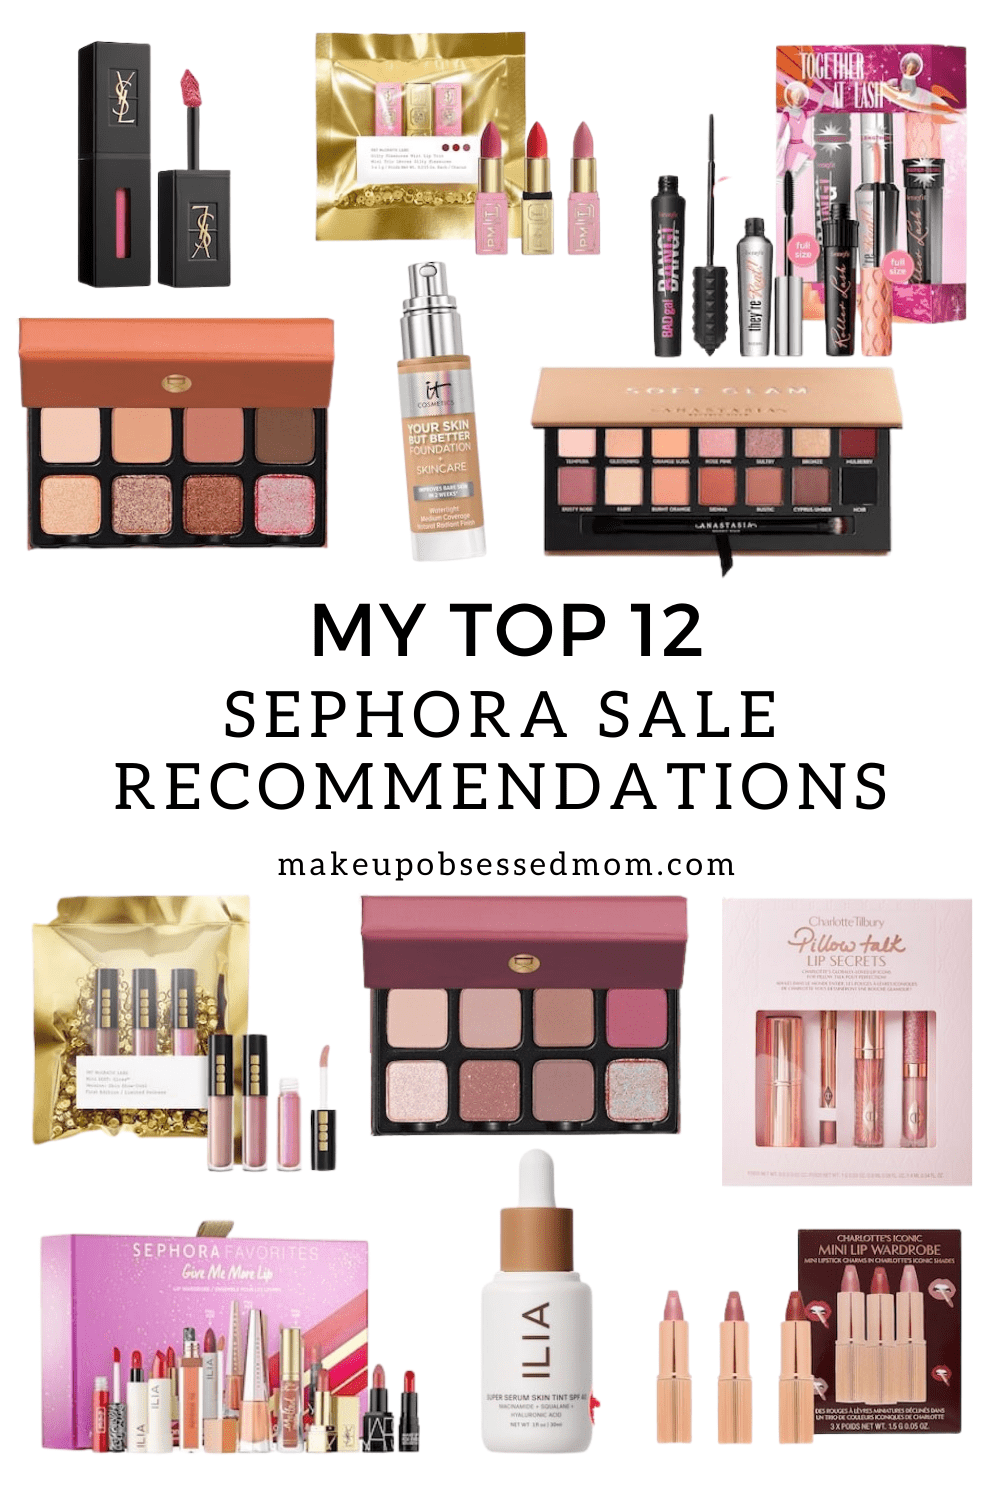 My Top 12 Sephora Picks